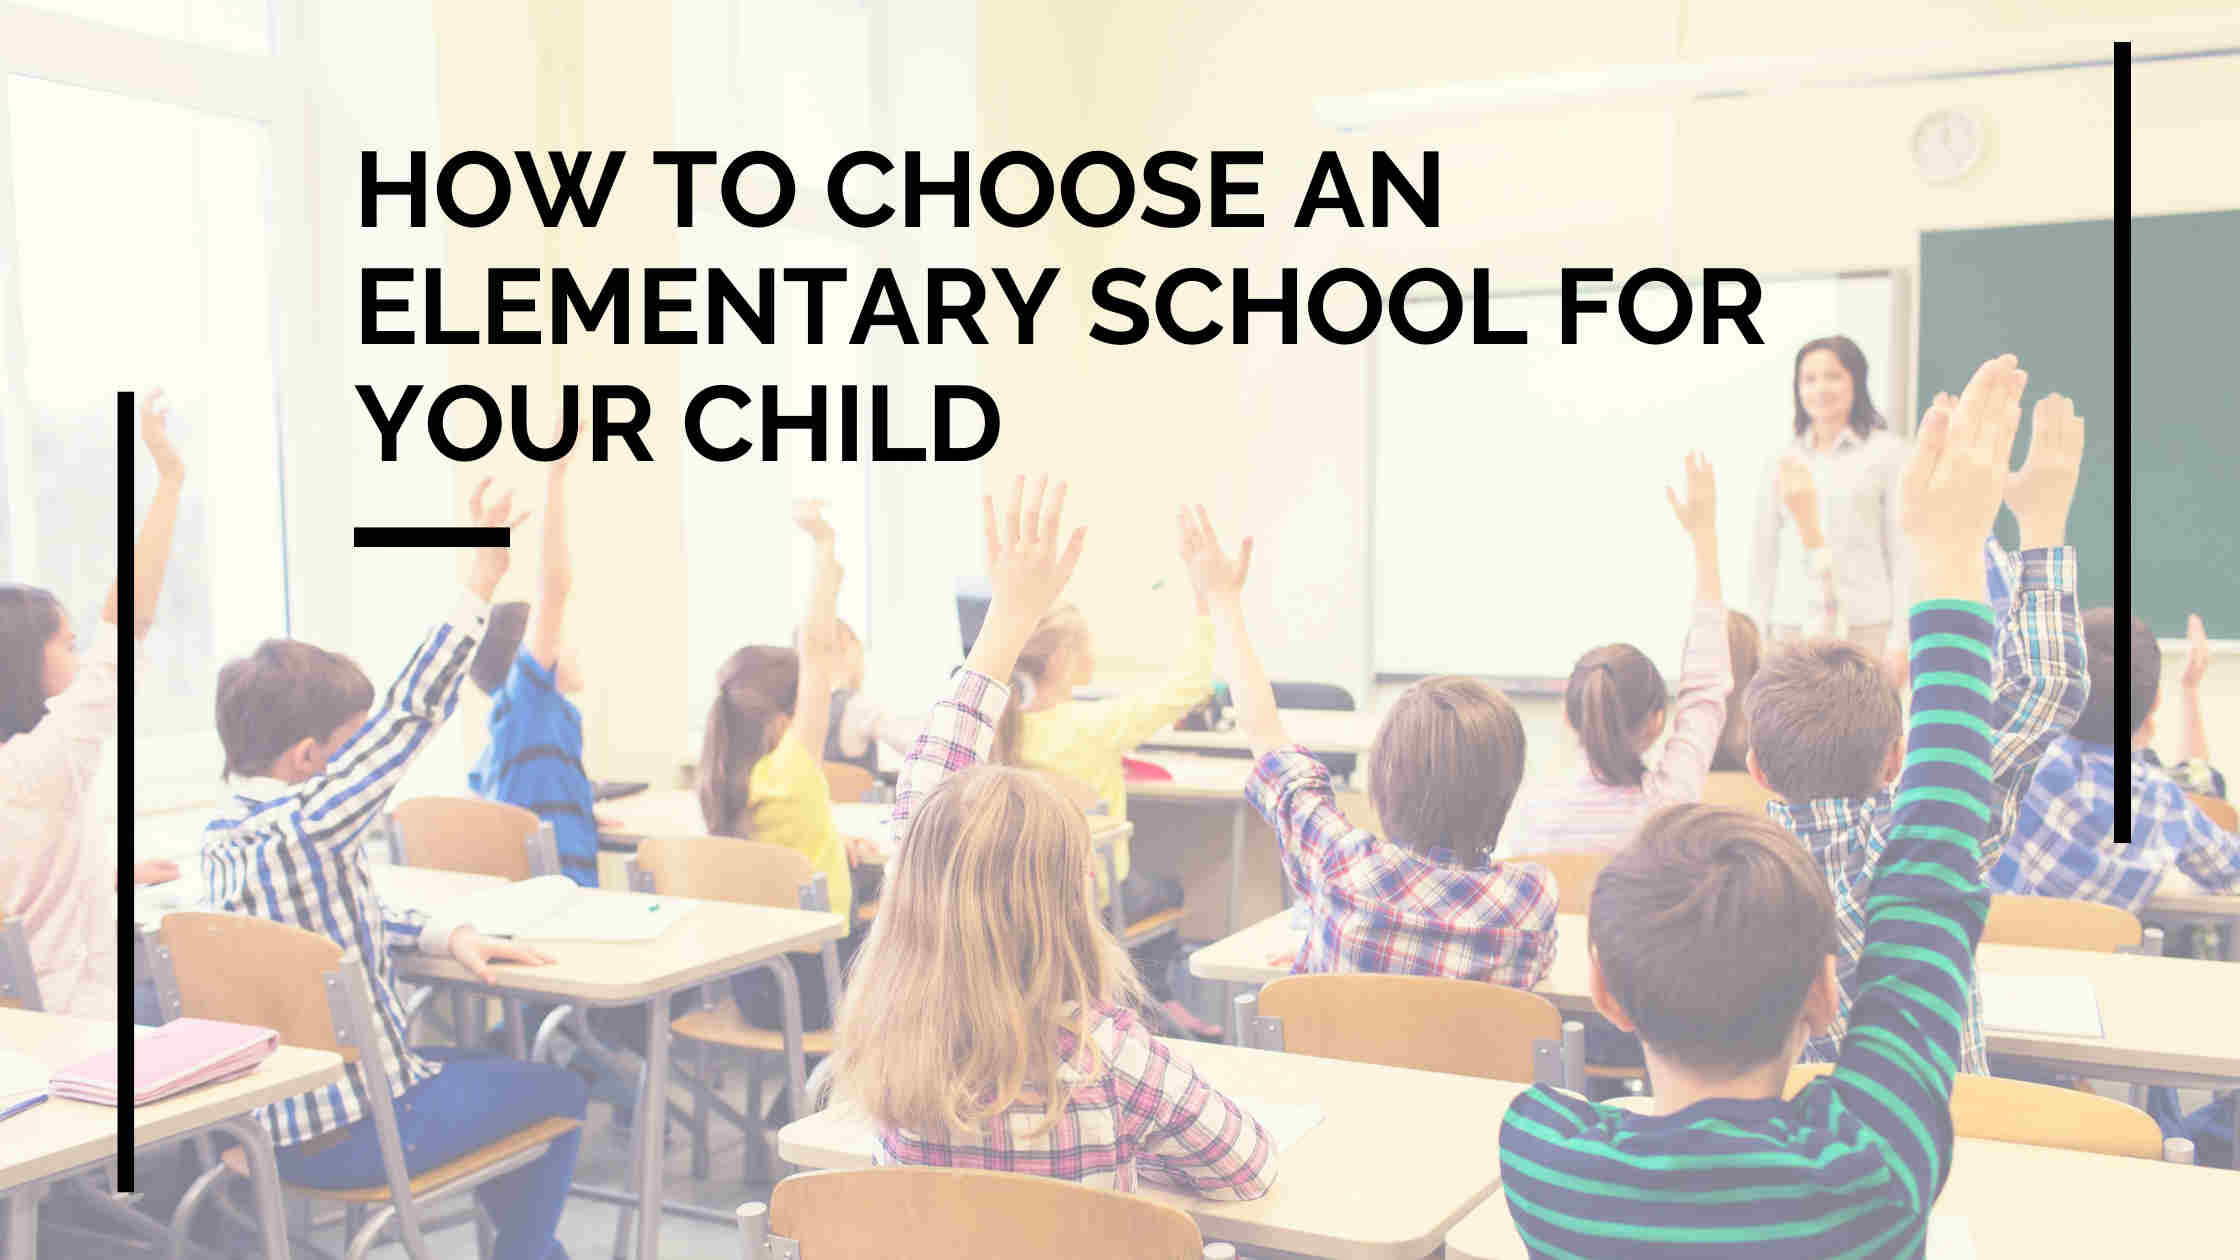 How To Choose An Elementary School For Your Child